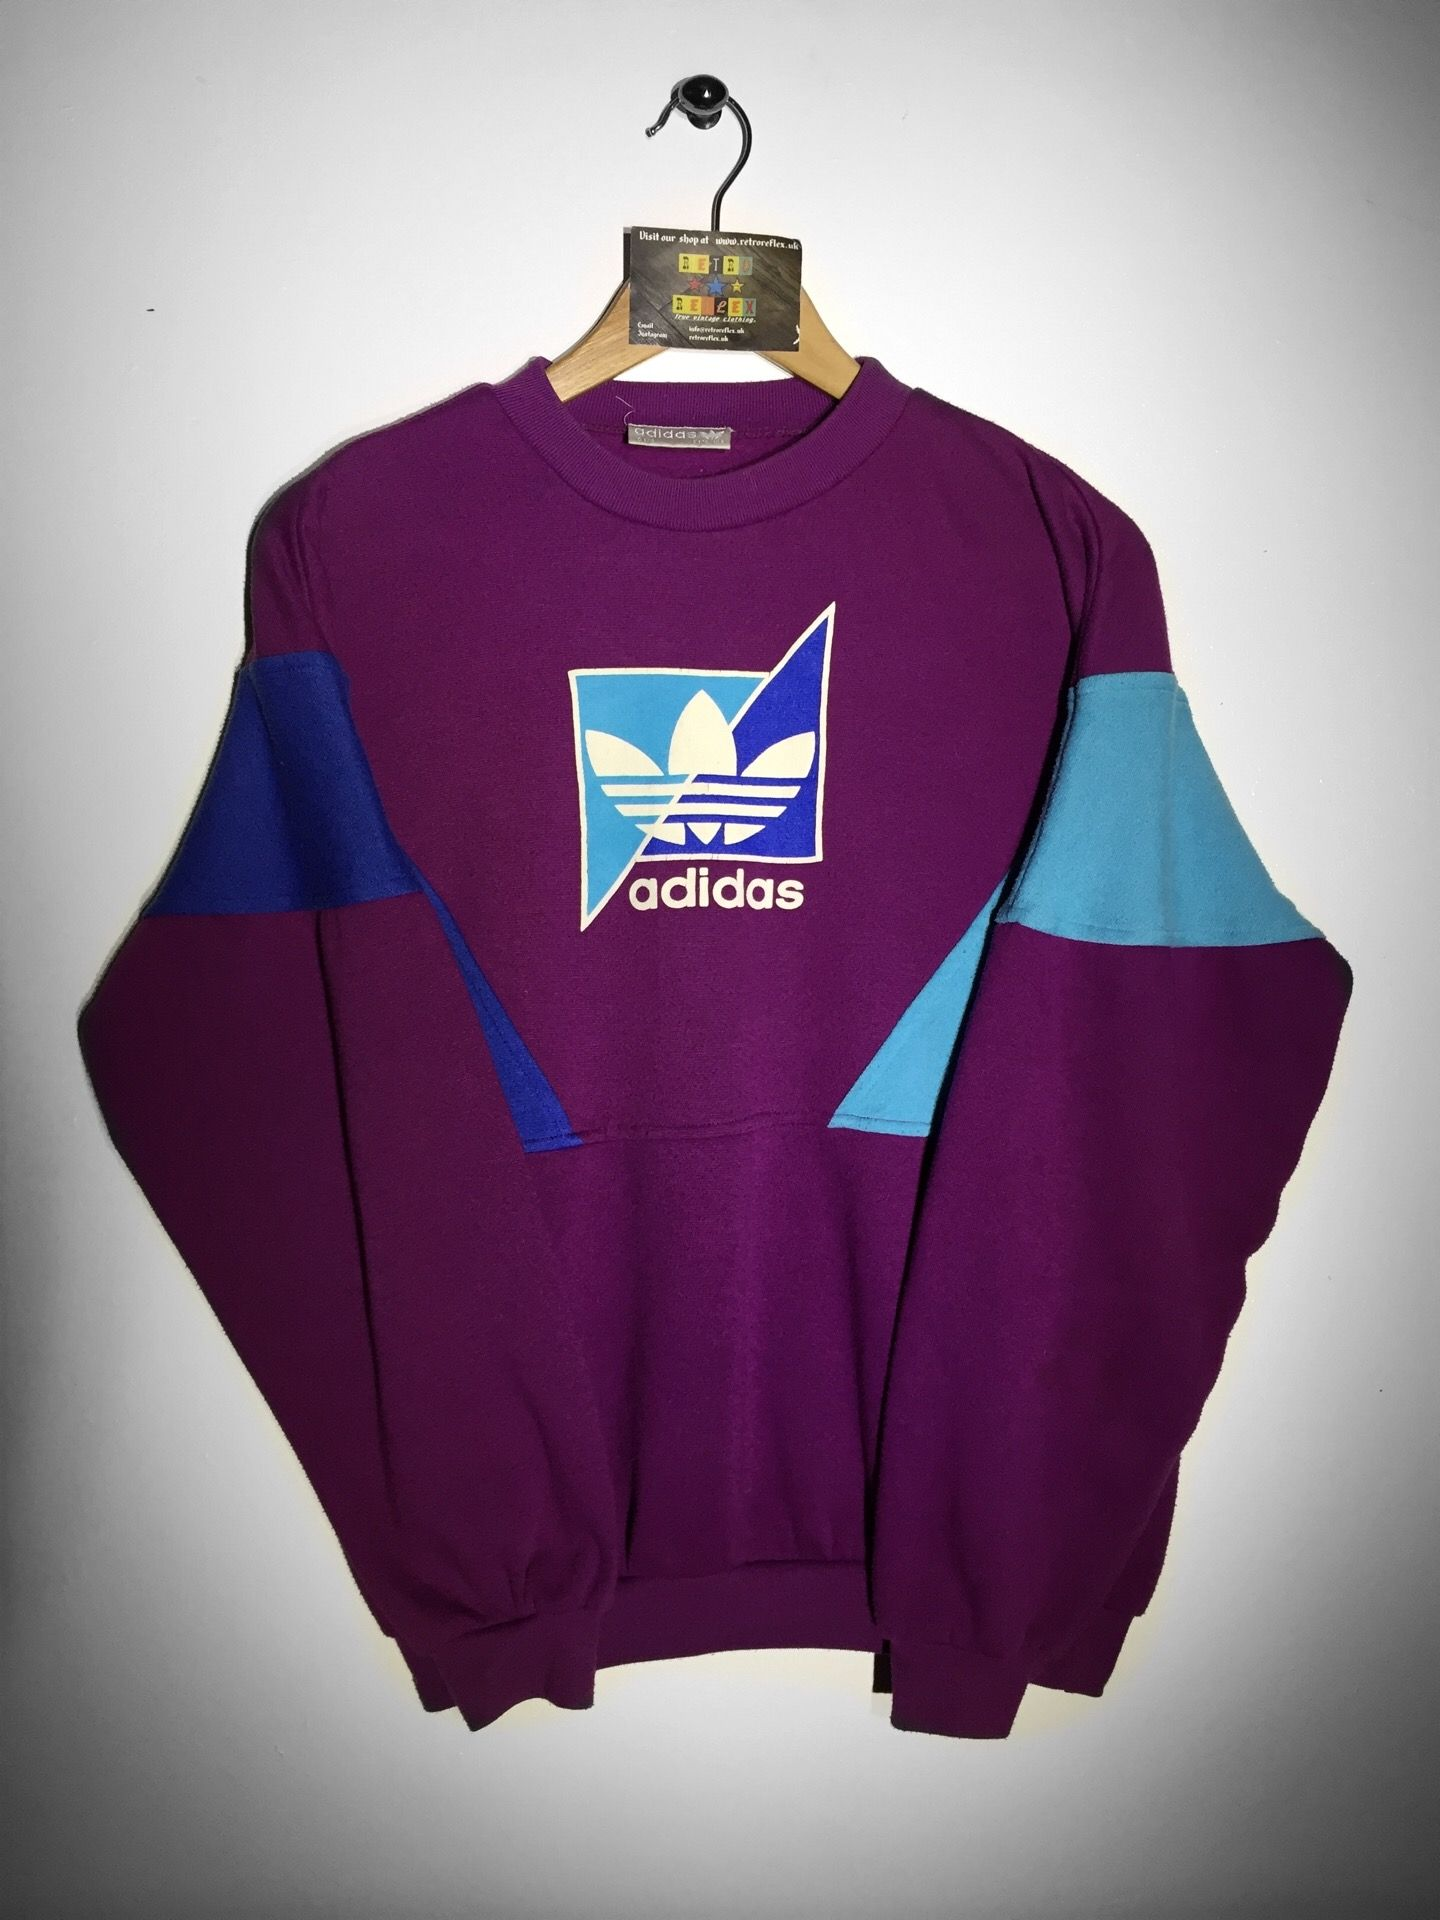 Adidas Sweatshirt Size Small 163 36 Website ️ Www Retroreflex